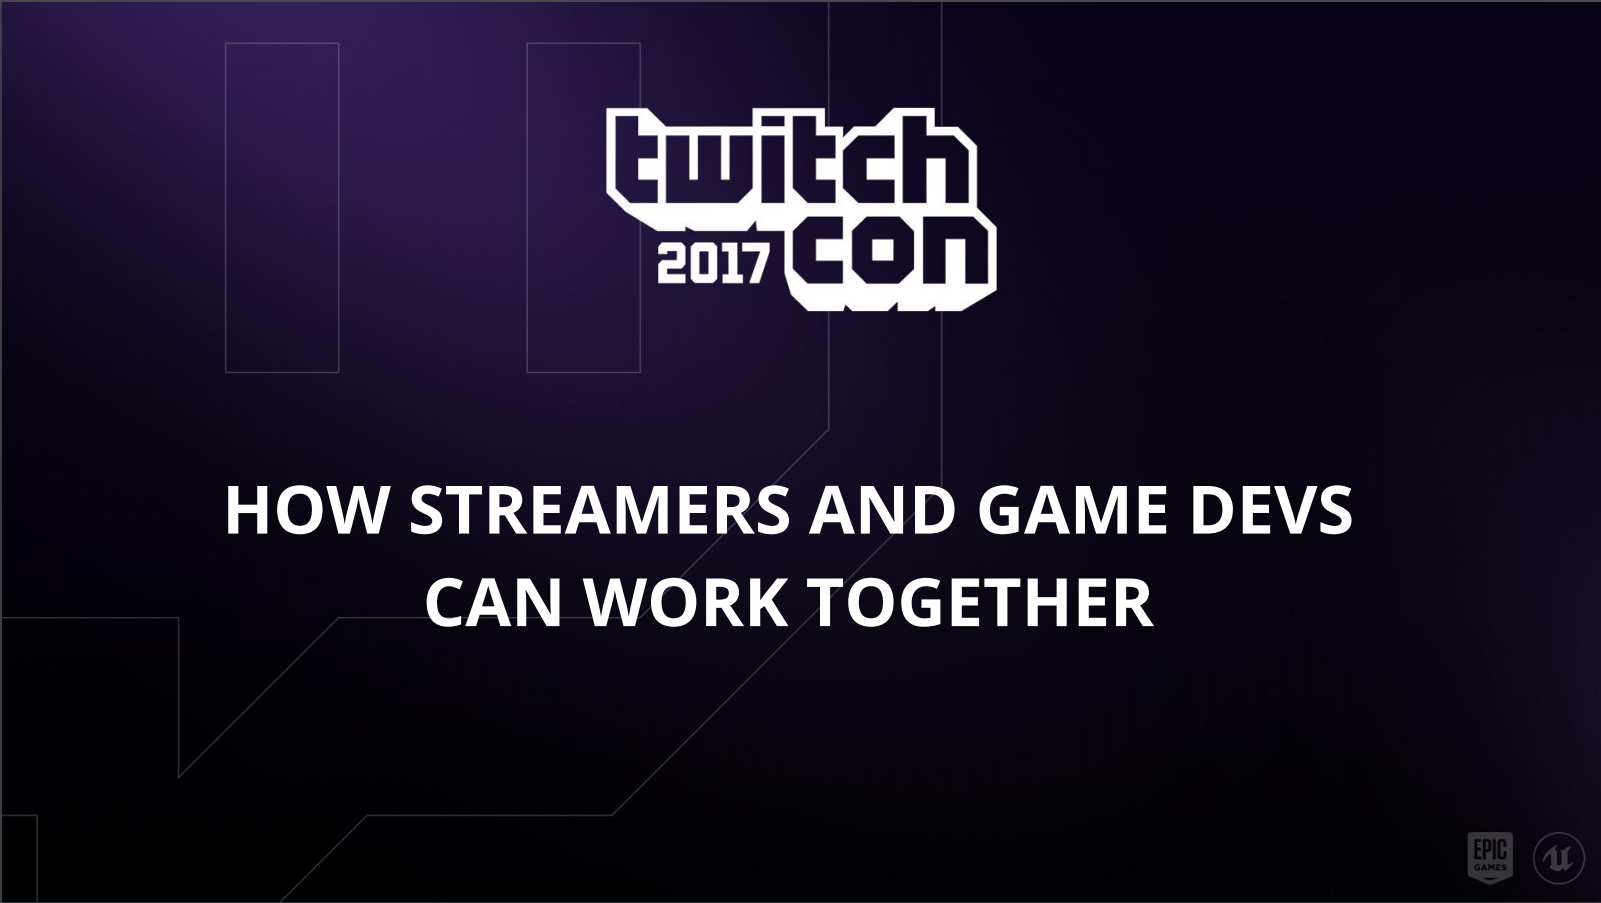 twitchcon.PNG